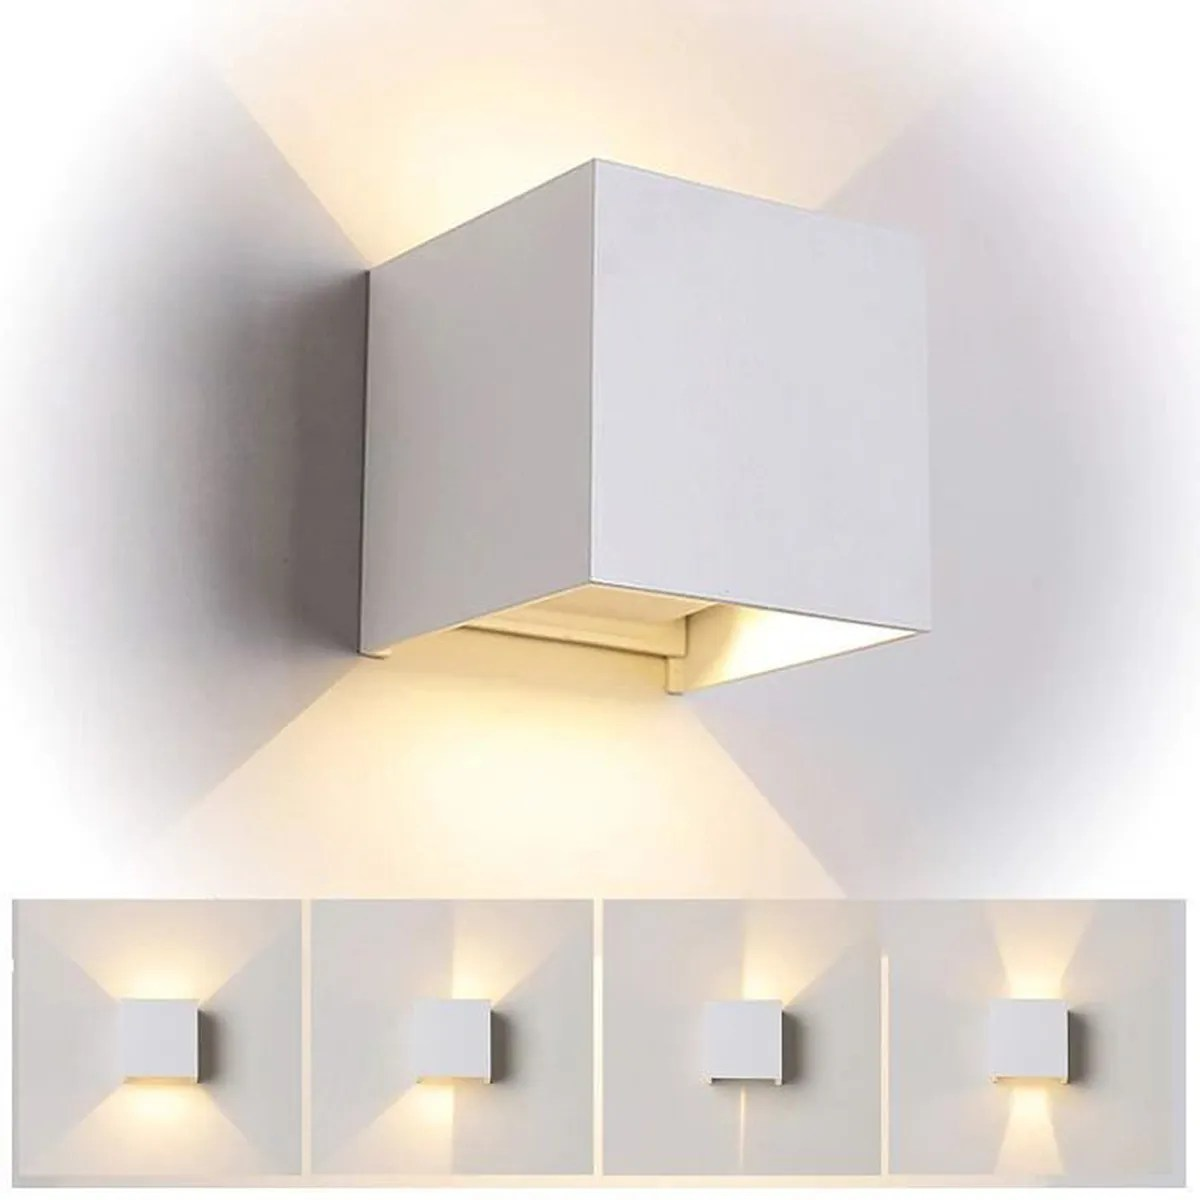 Applique Murale Exterieure Blanche 12w Led Applique Murale Exterieur Interieur Blanc Anti Eau Ip65 Réglable Lampe Up And Down Moderne Design 3000k Blanc Chaud